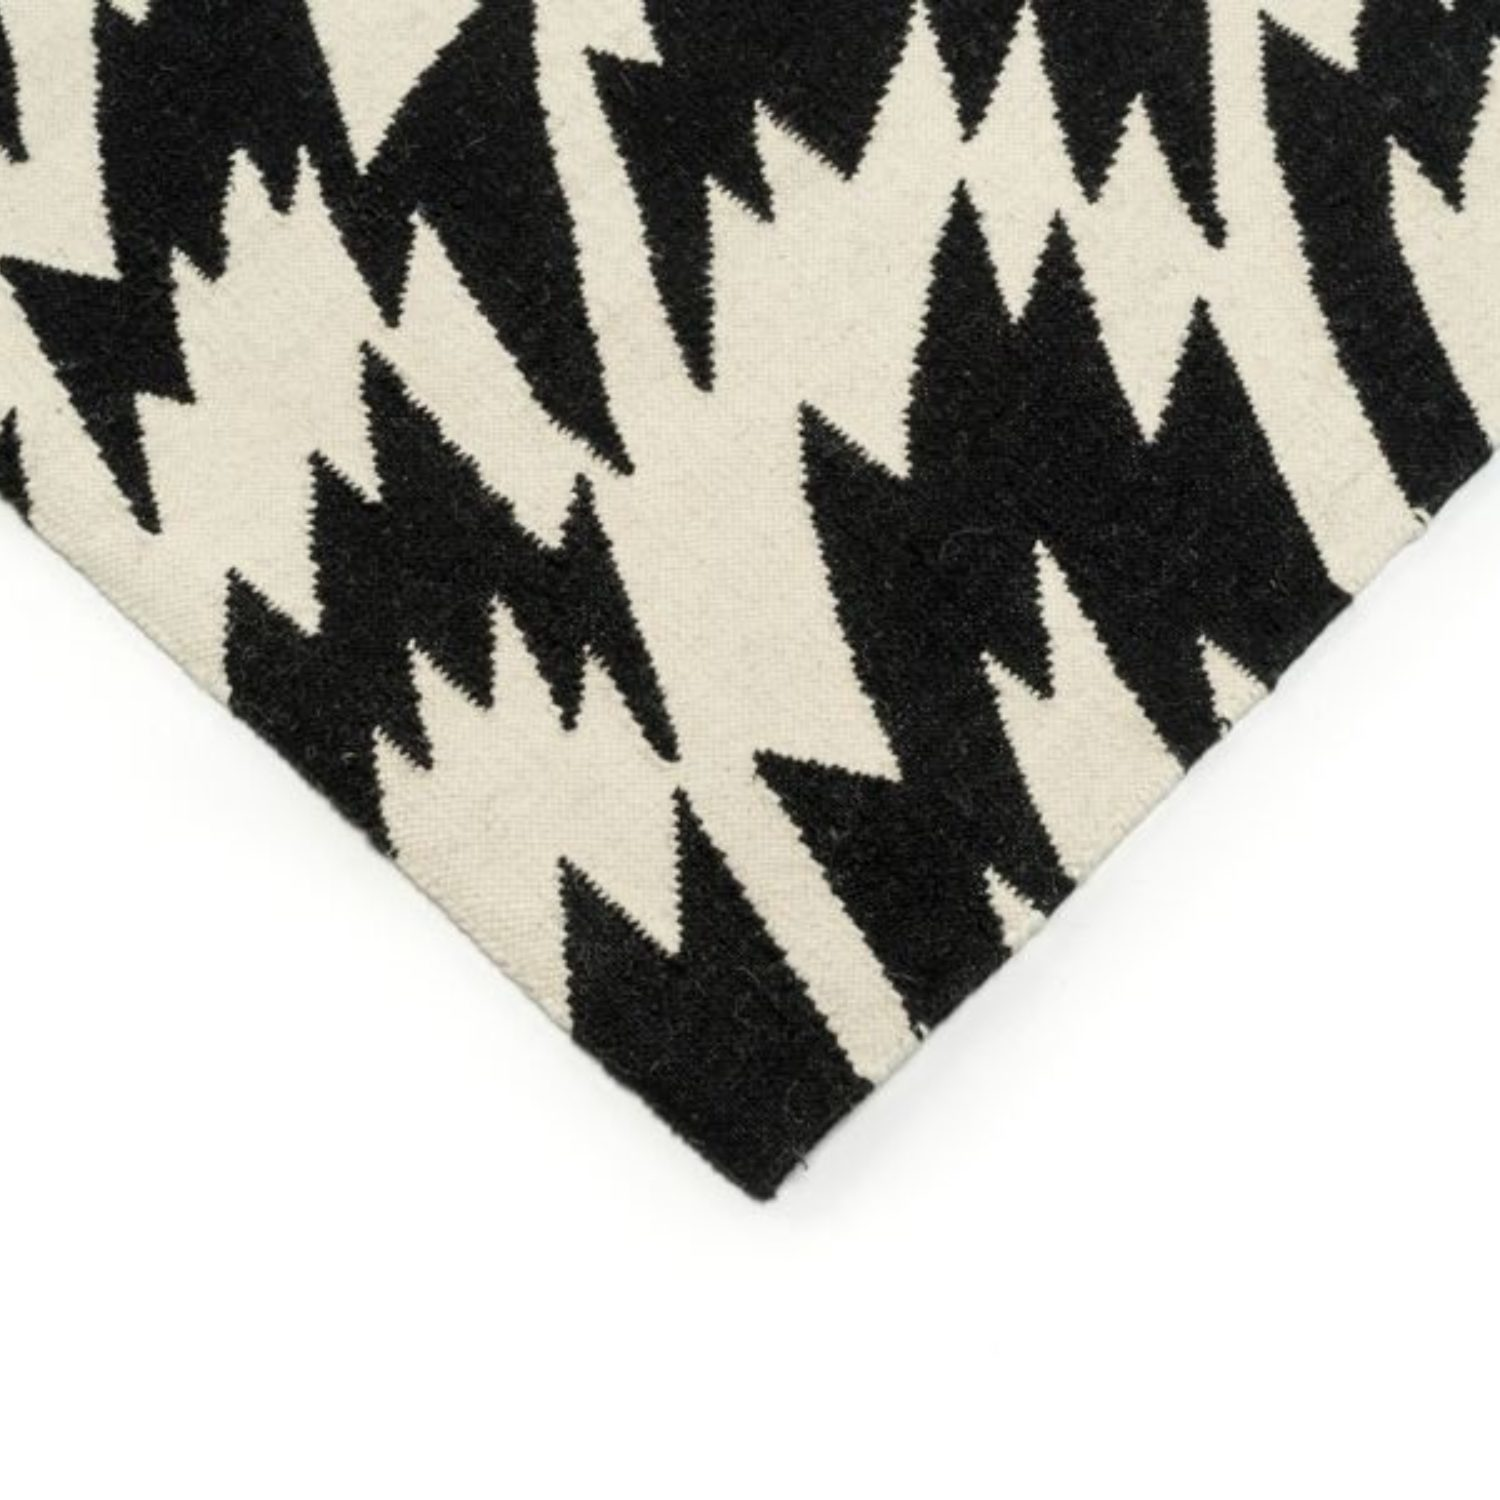 The iconic Flash print form Eley Kishimoto